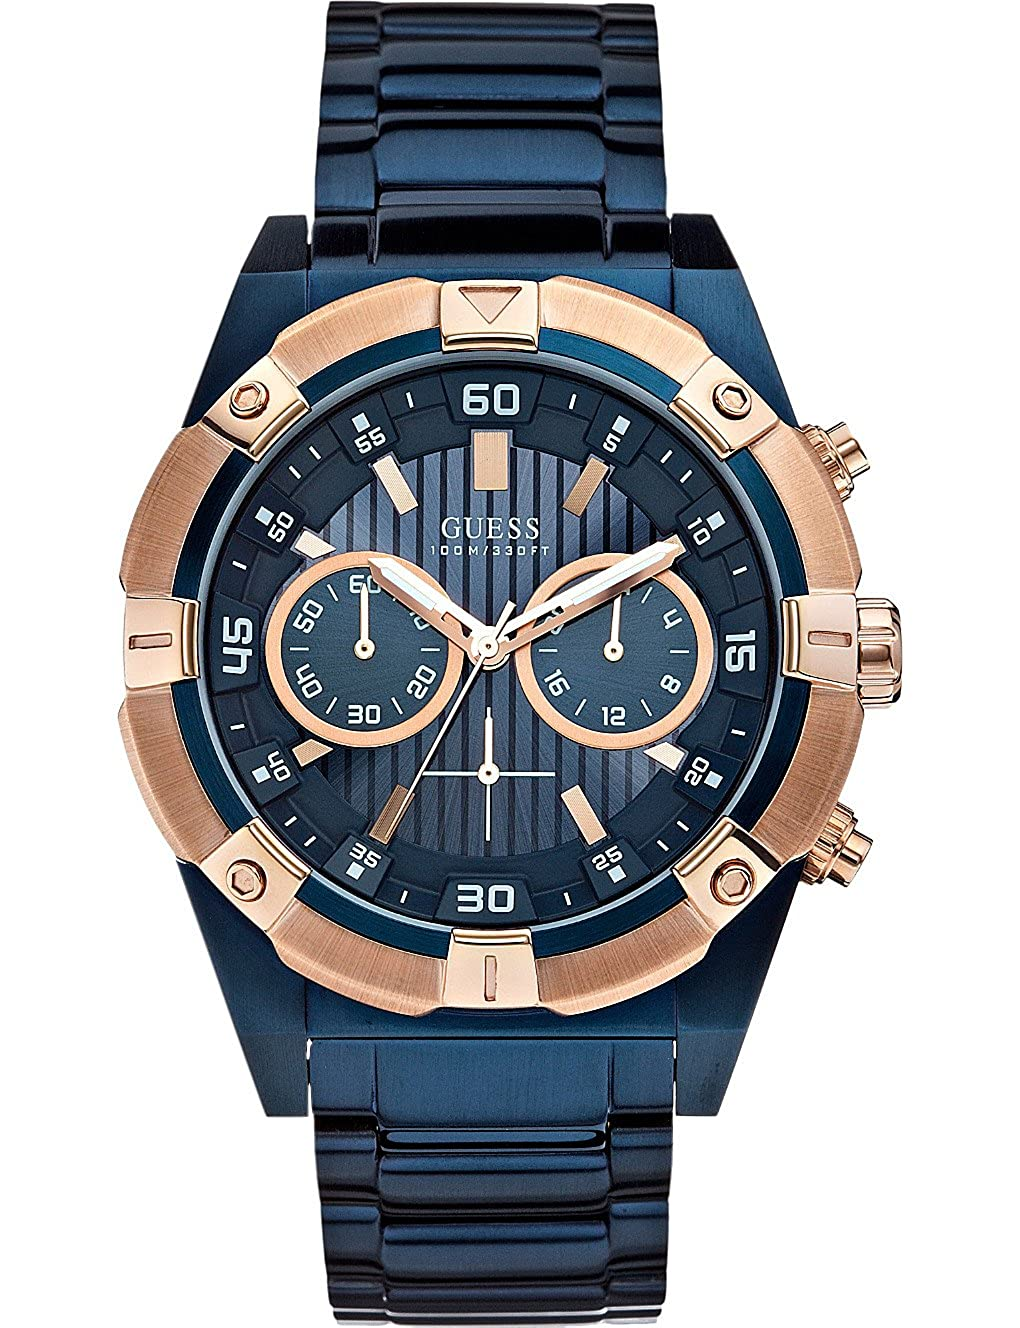 GUESS Blue Dial Analogue Watch for Men (W0377G4)